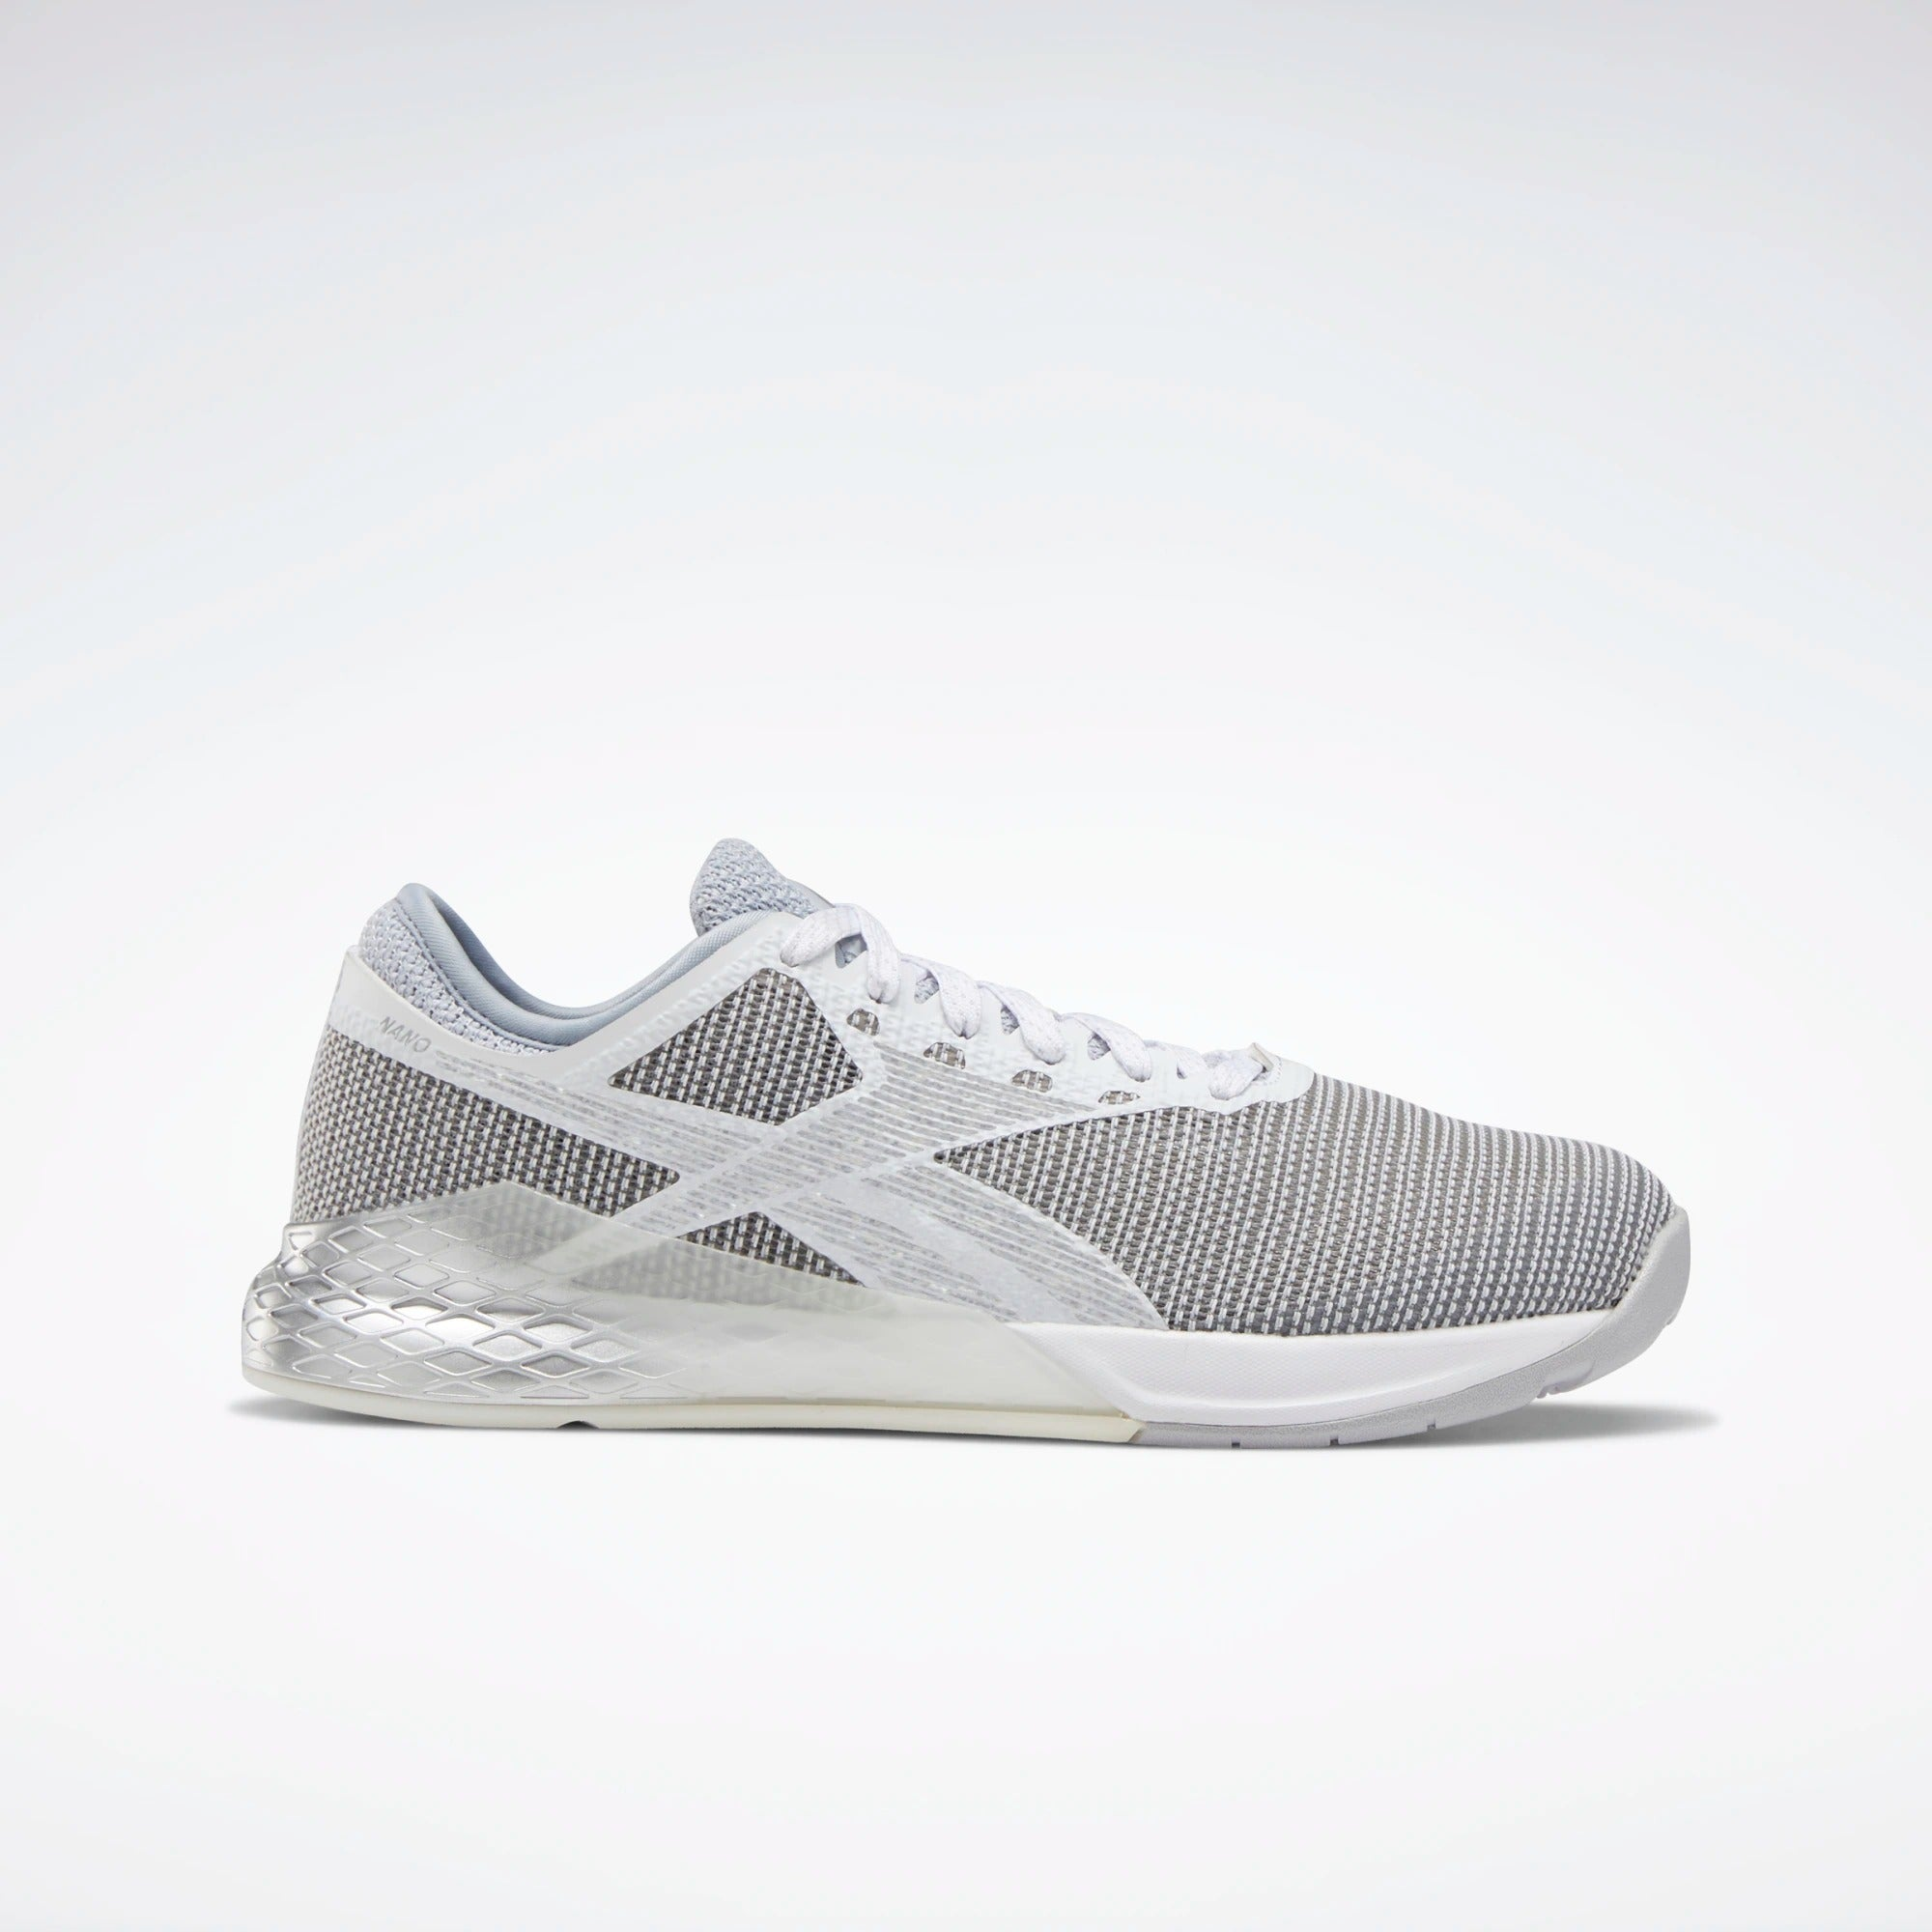 Reebok Nano 9.0 Shoes - Grey